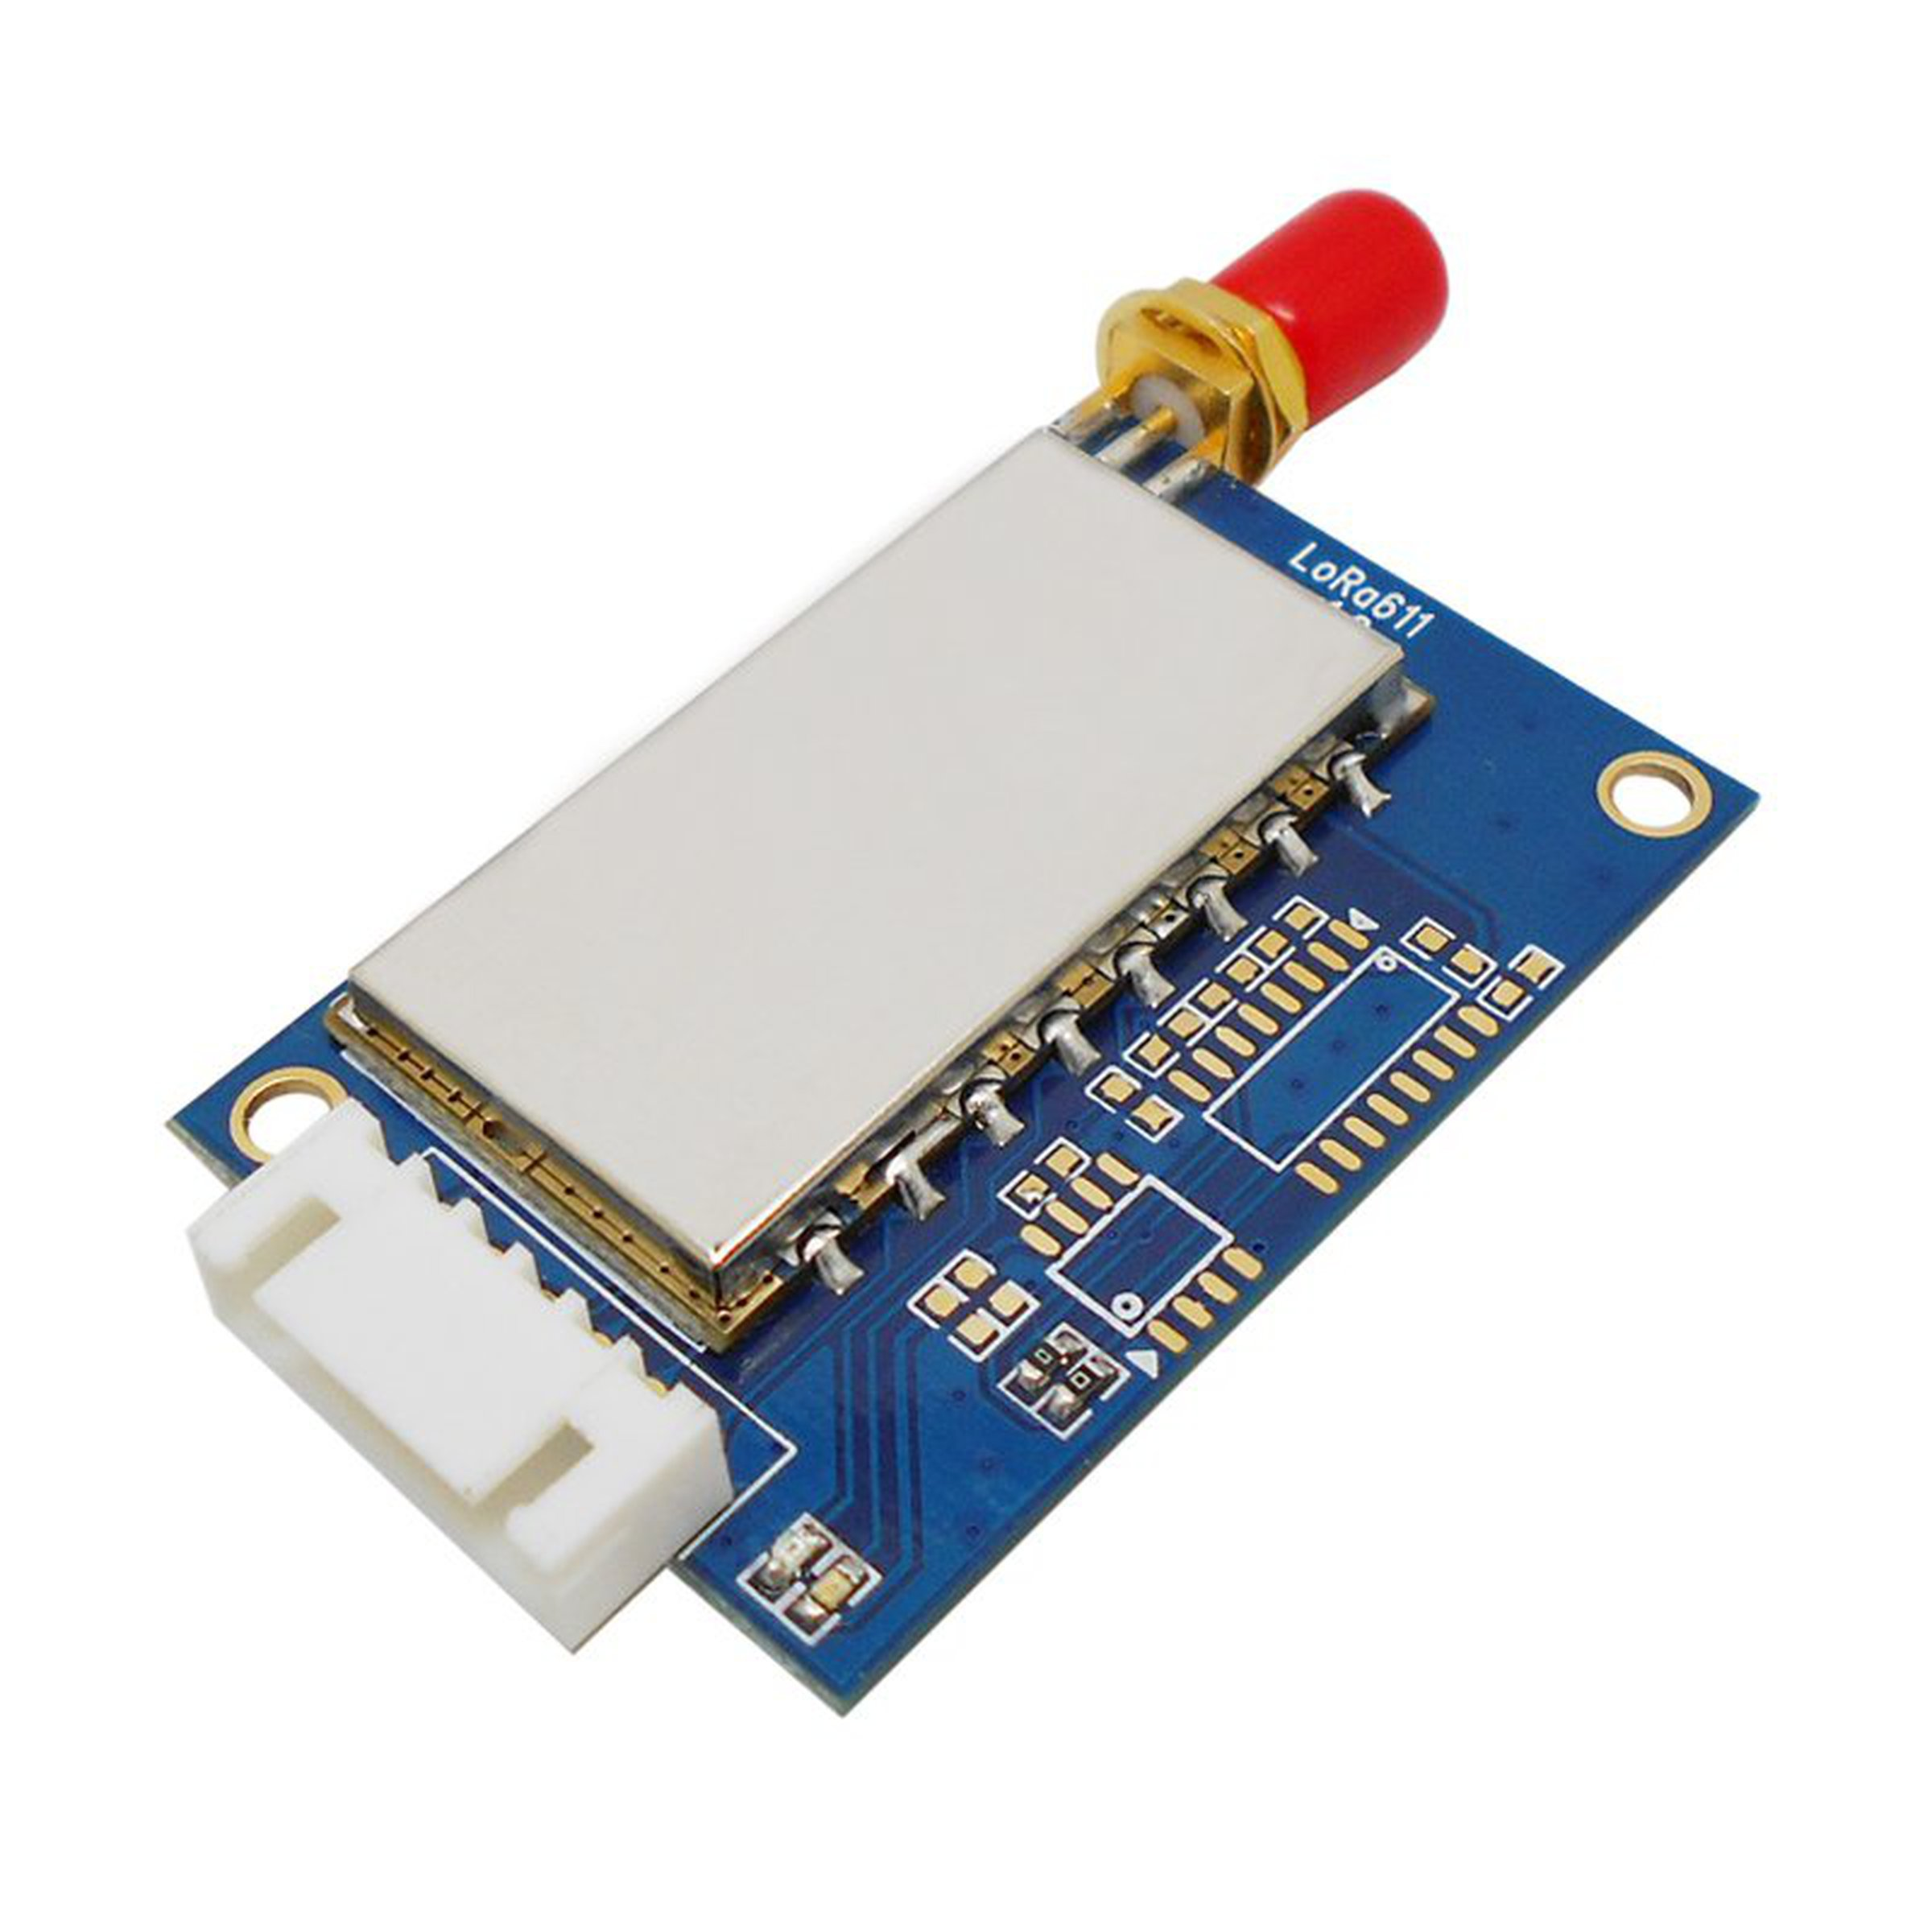 Browse Products By Nicerf On Tindie 100mw Stereo Amplifier Circuit Based Tl082 Sale 2pcs Lora611 433mhz Ttl Interface Rf Module